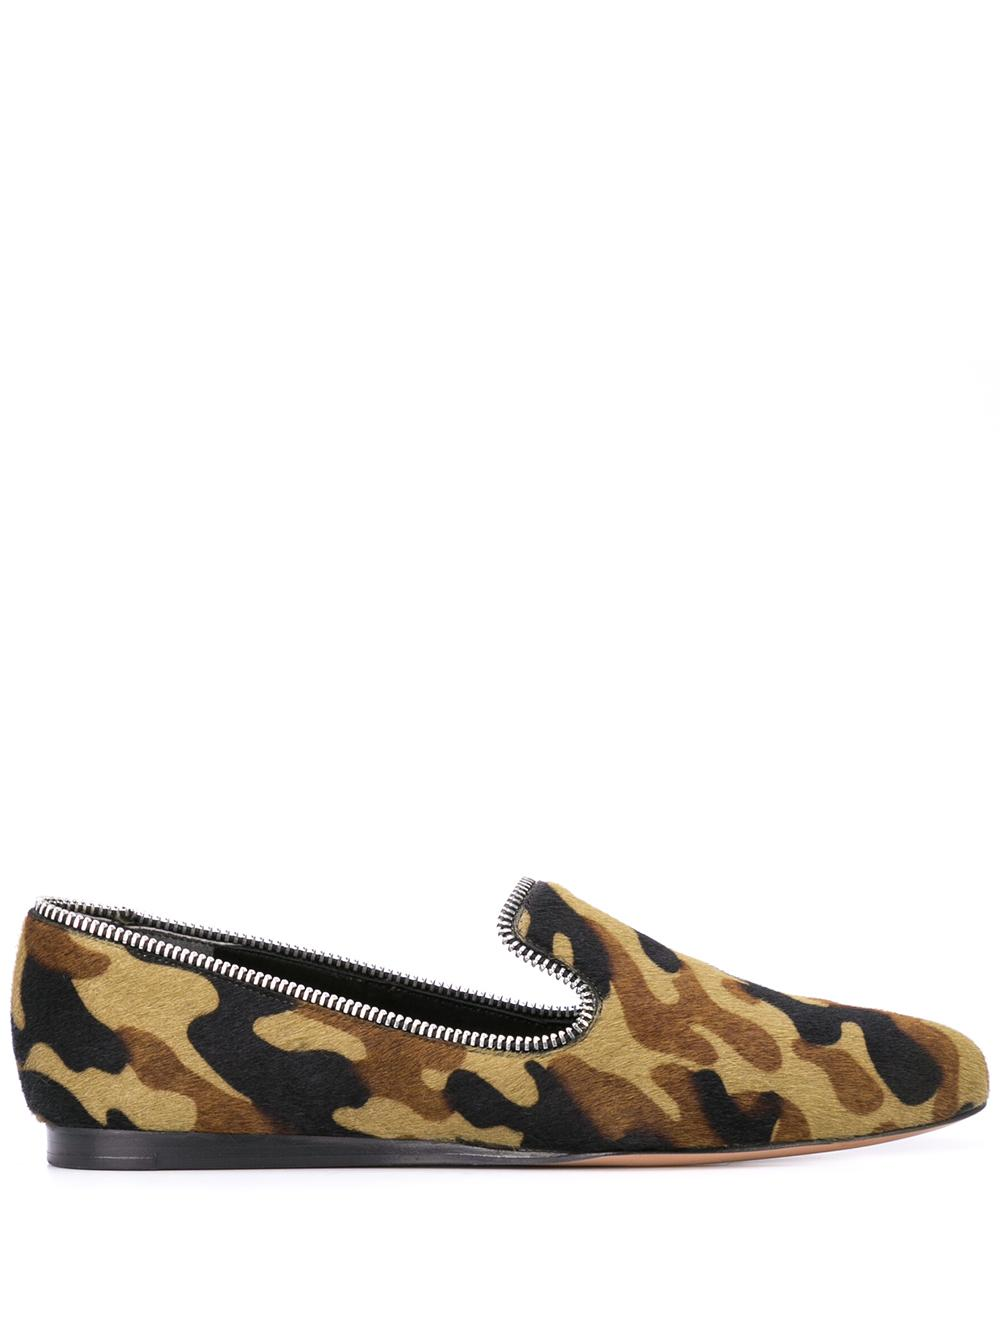 Camo Loafer With Zipper Trim Item # F190806HC